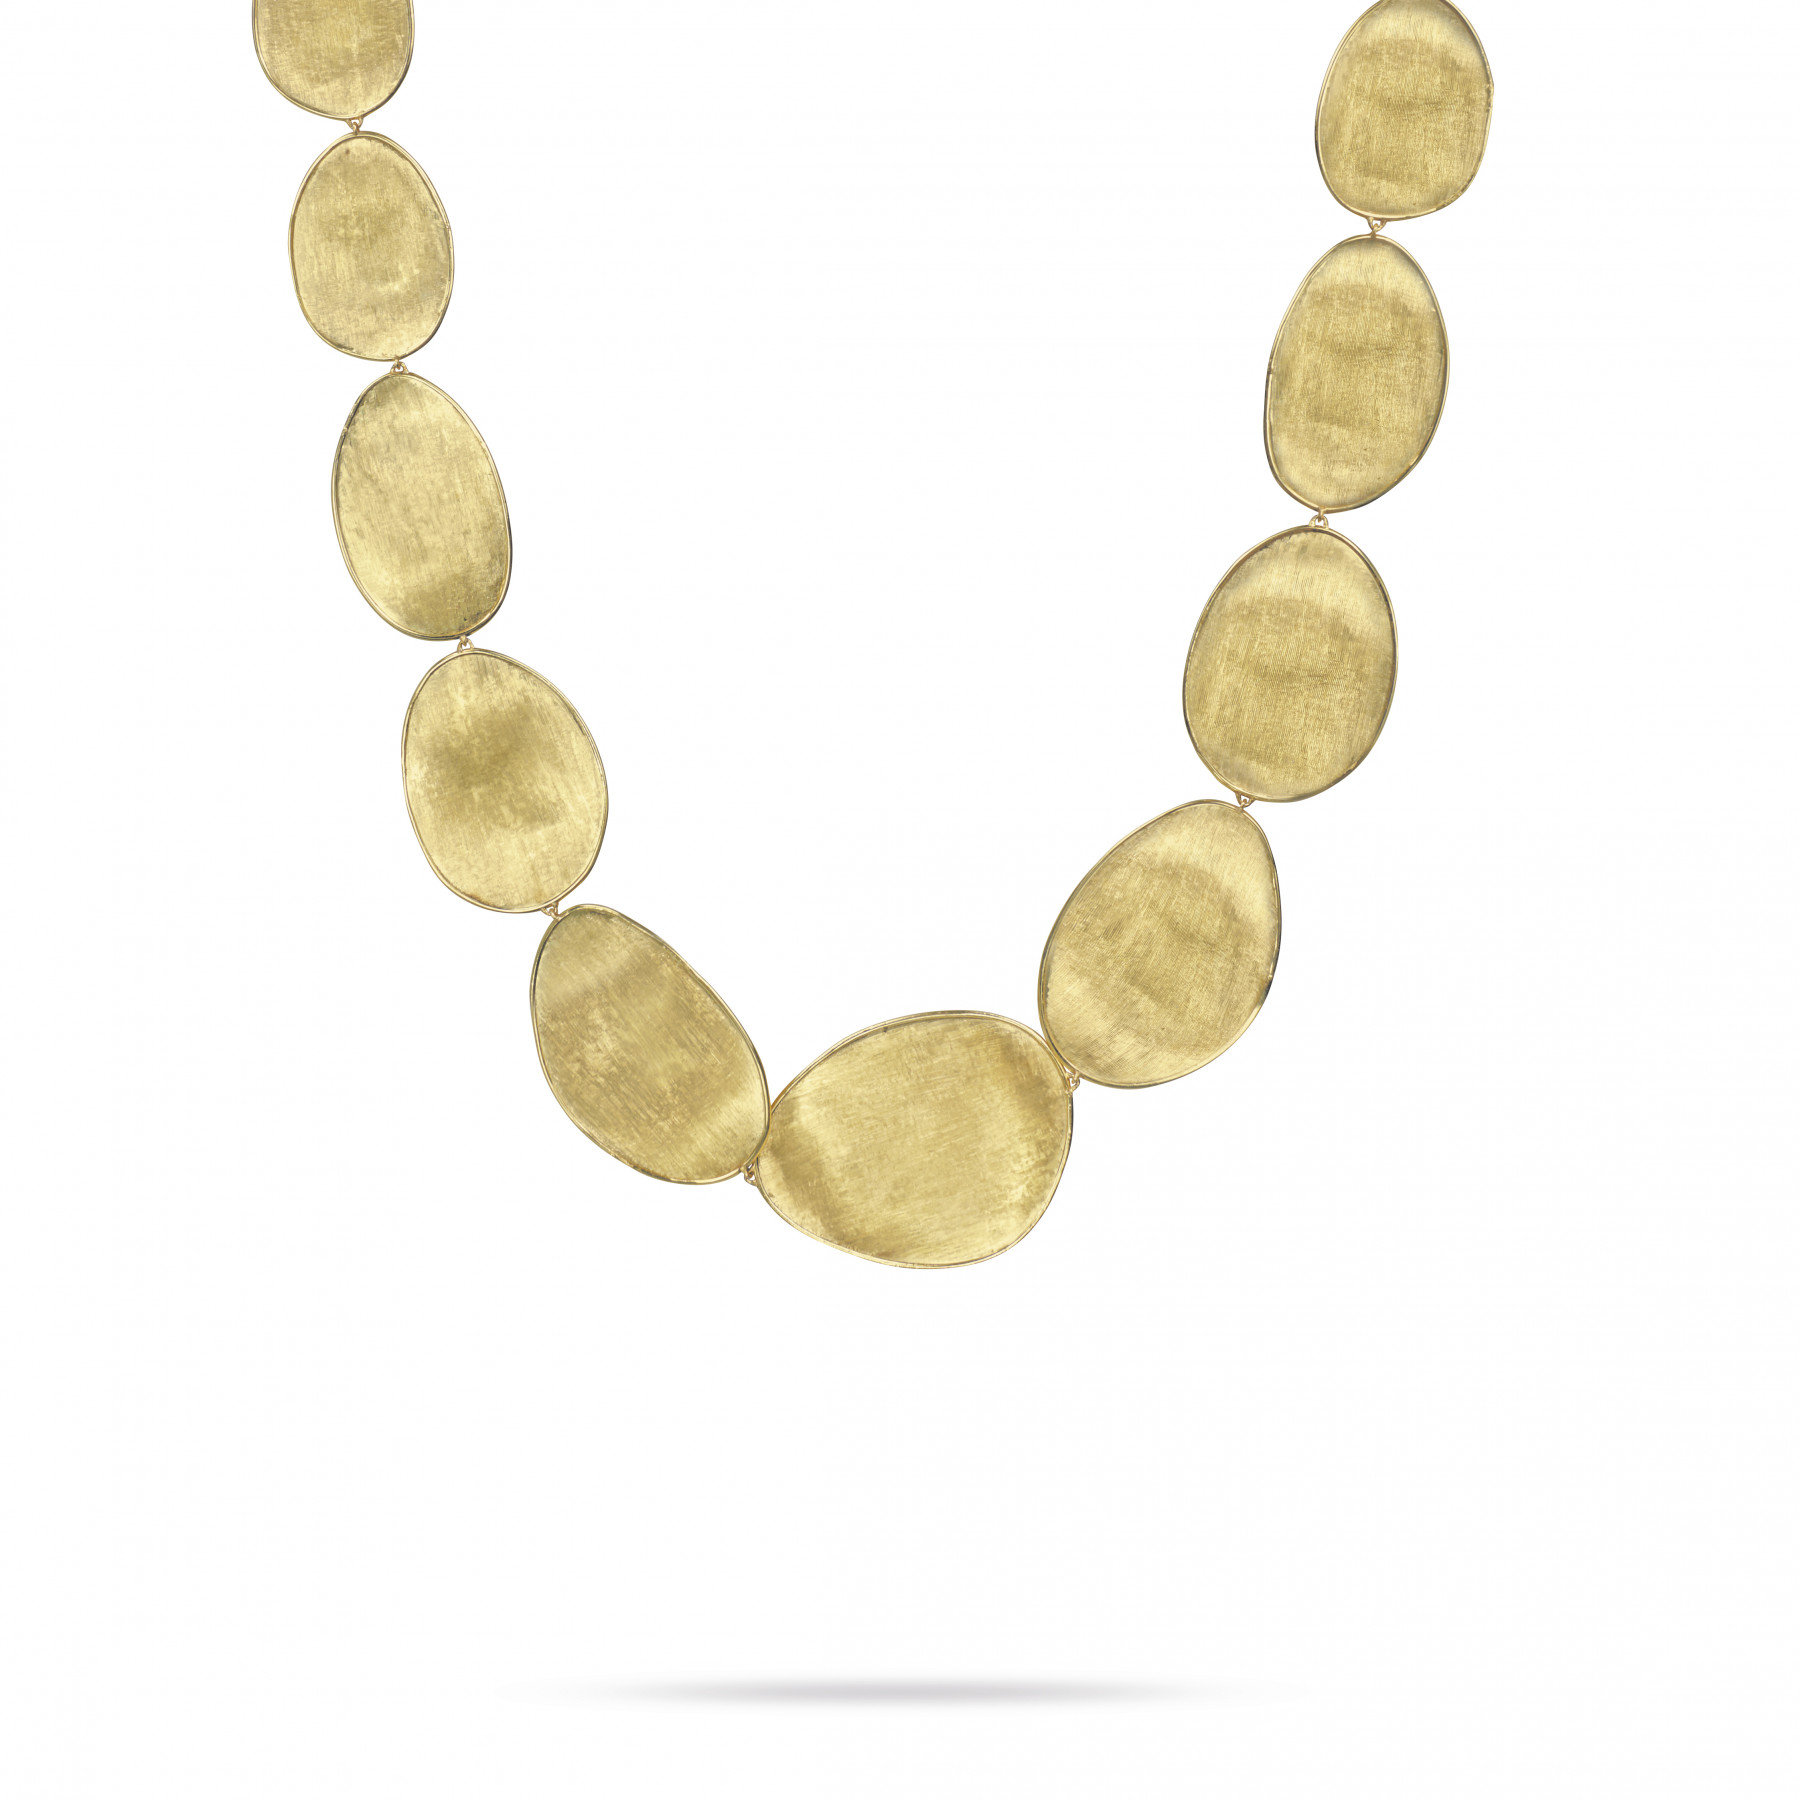 Marco Bicego Lunaria 18kt Yellow Gold Necklace